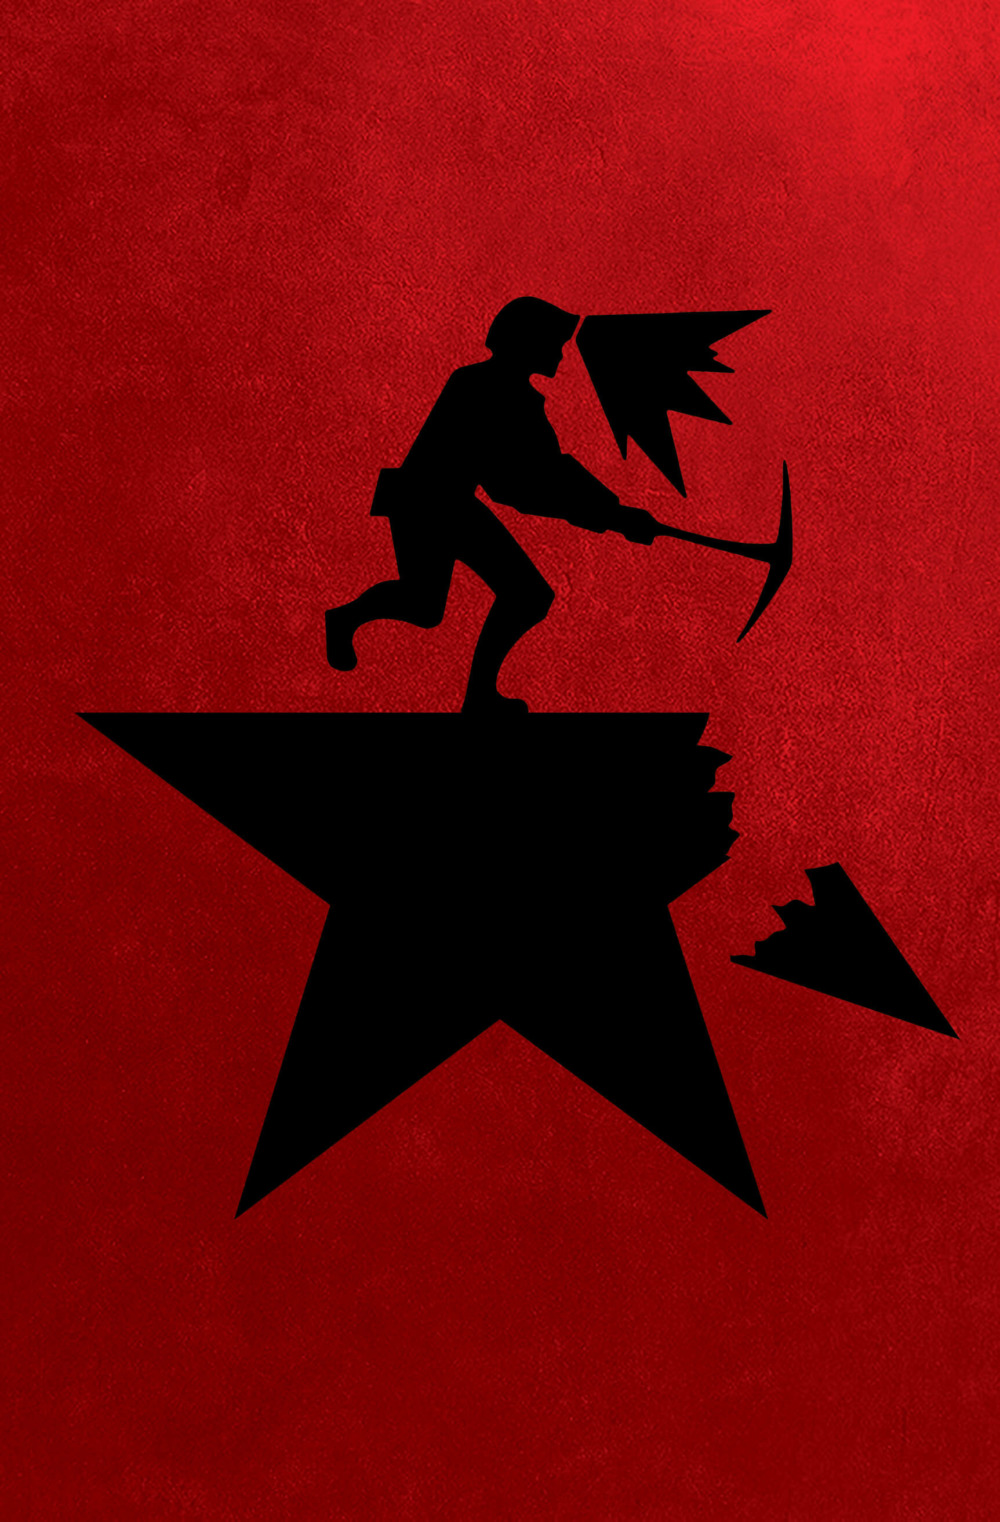 A play on the Hamilton poster, a coal miner with a pickaxe breaks off one of the star's arms. The background is a deep communist red.